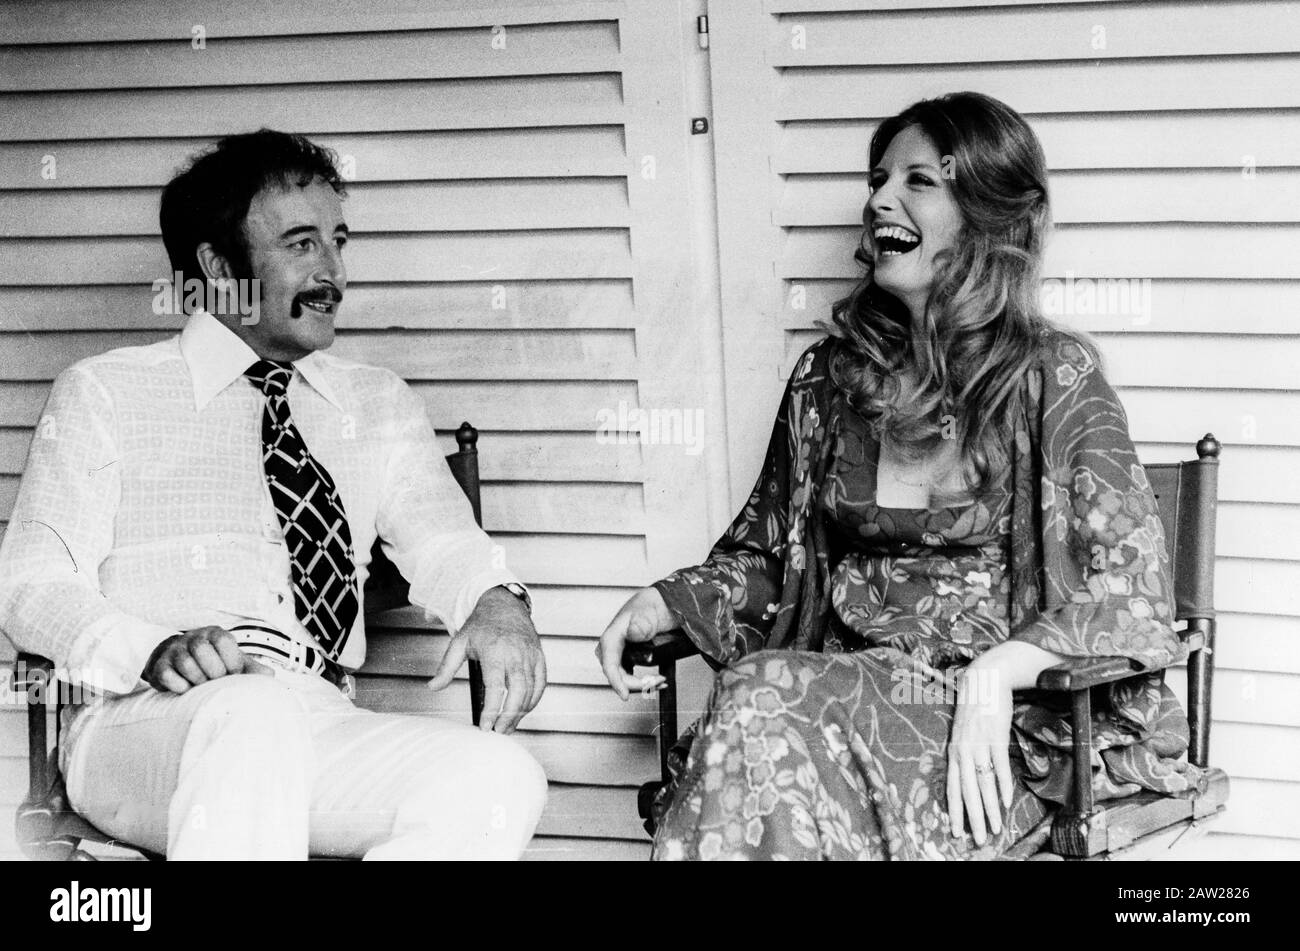 peter sellers, catherine schell, the return of the pink panther, 1975 Stock Photo